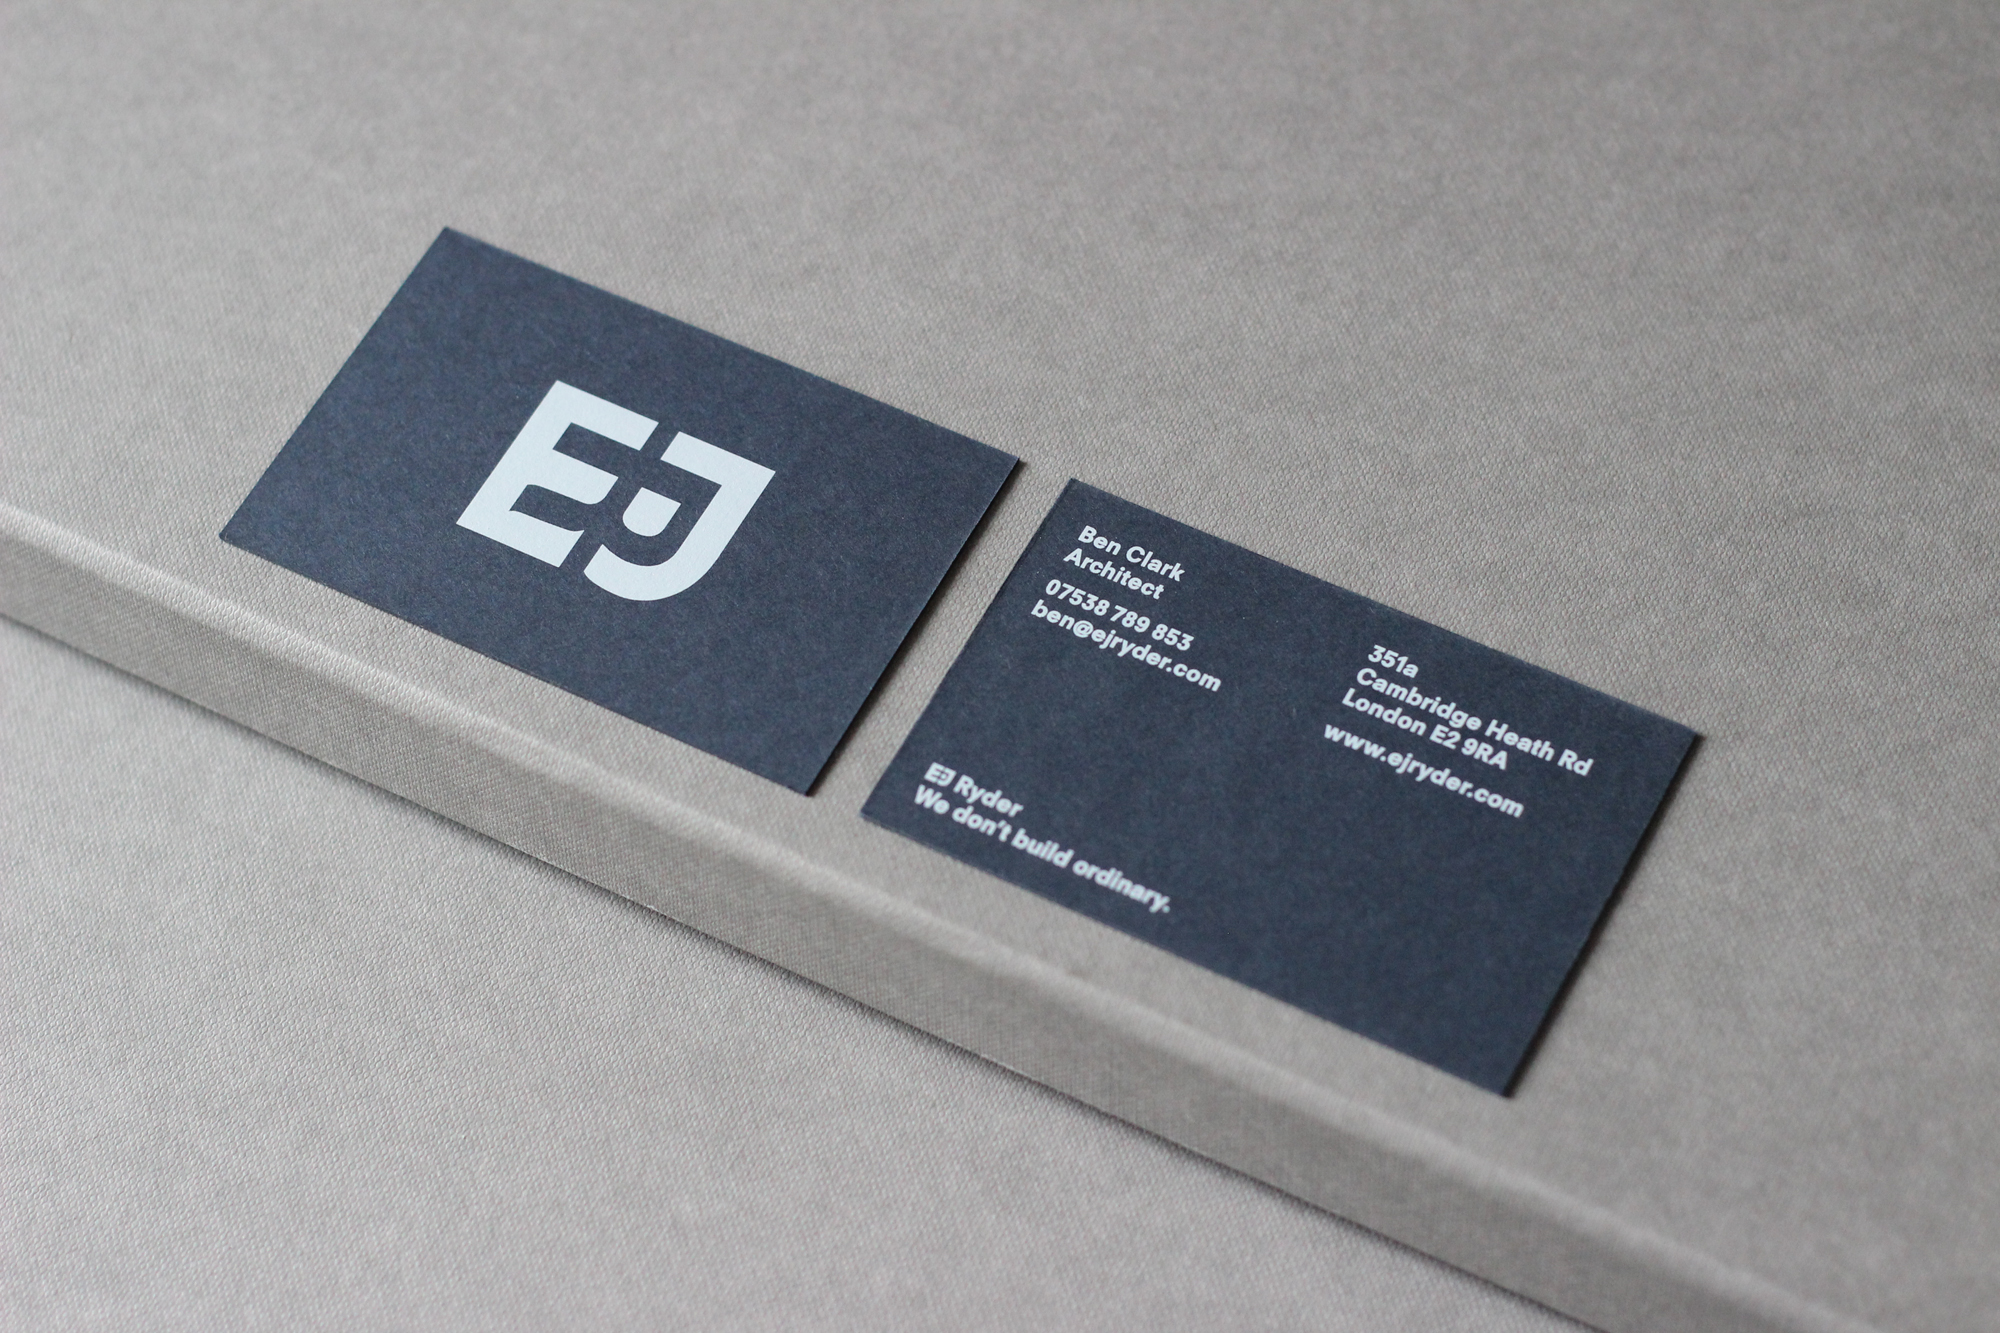 EJ_Ryder_Design_and_build_Company_identity_design_Alan_Clarke-Symonds_graphic_design_project_business cards_03.jpg